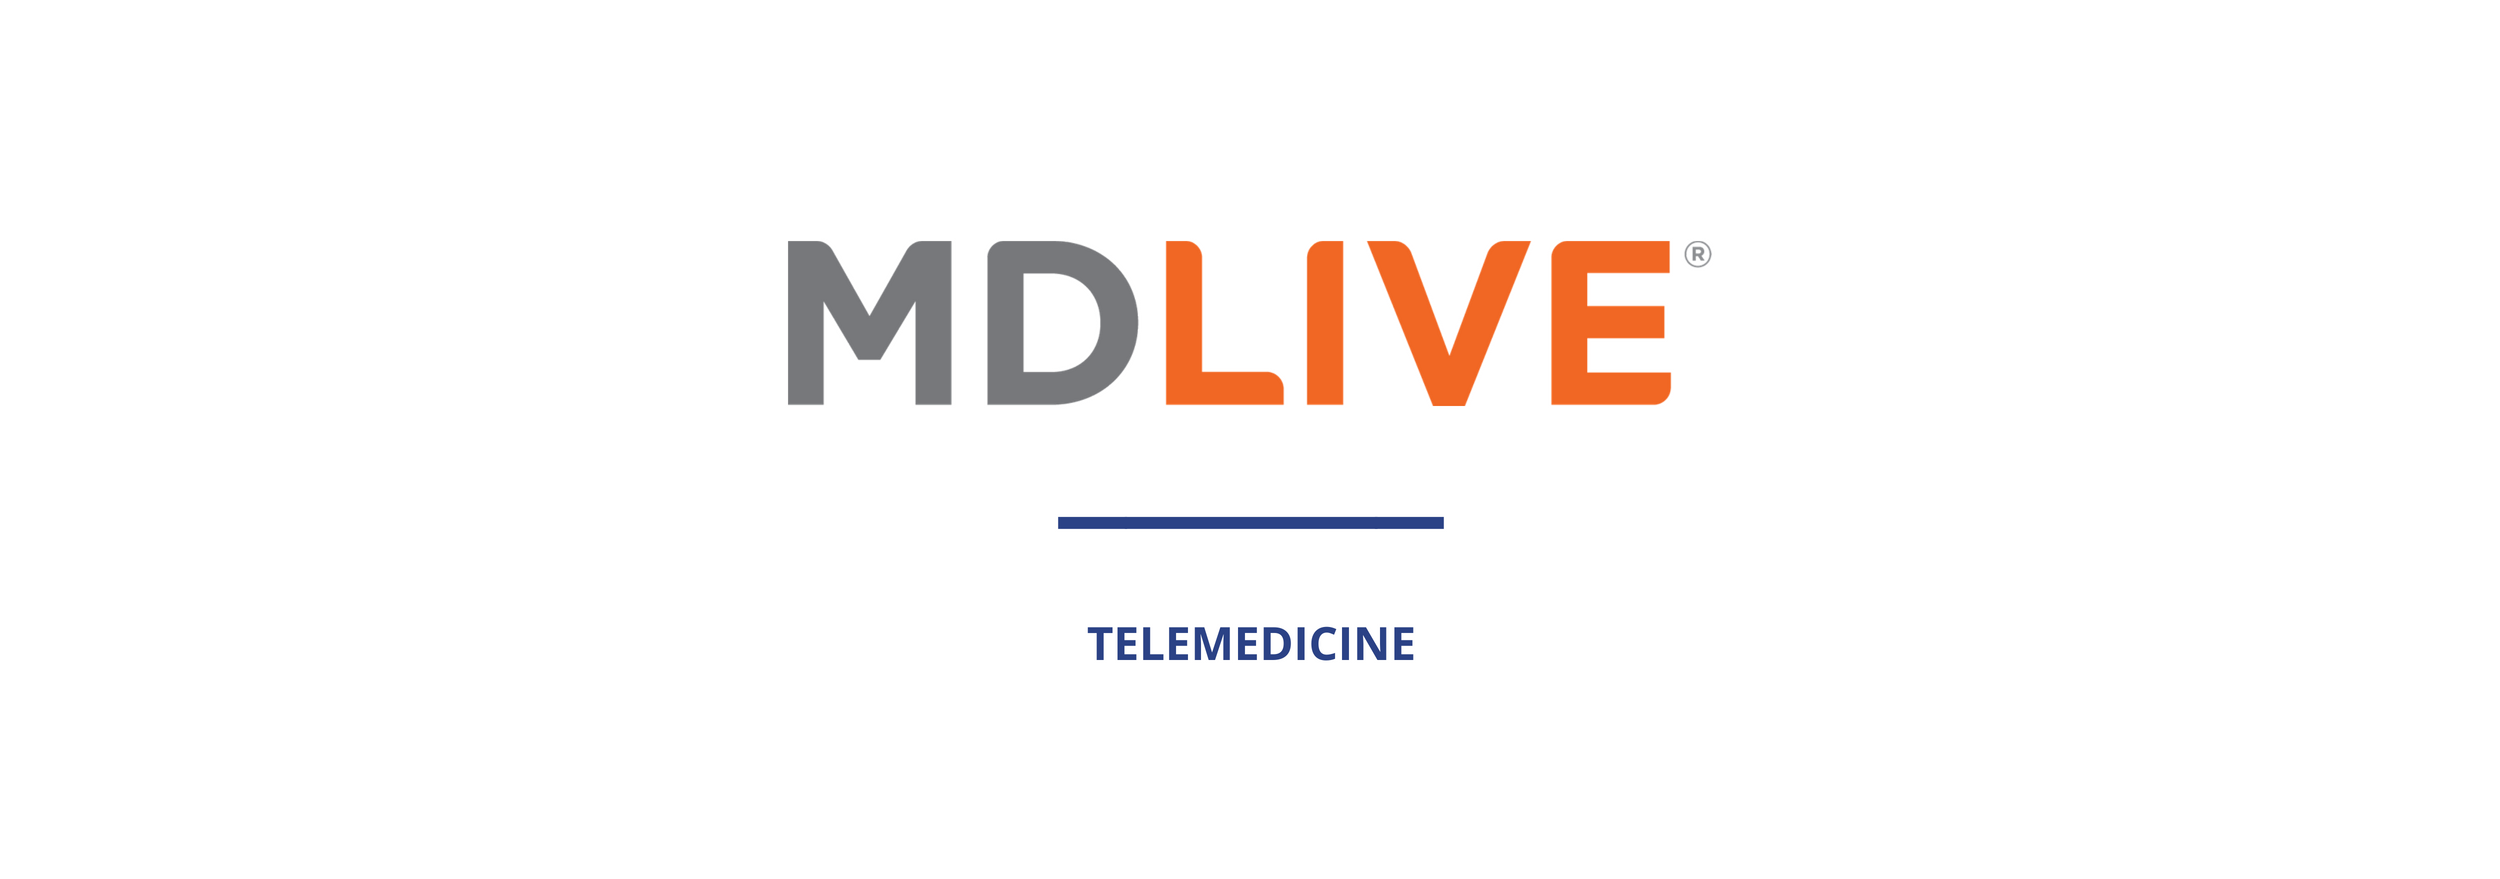 MDLIVE logo for homepage.png